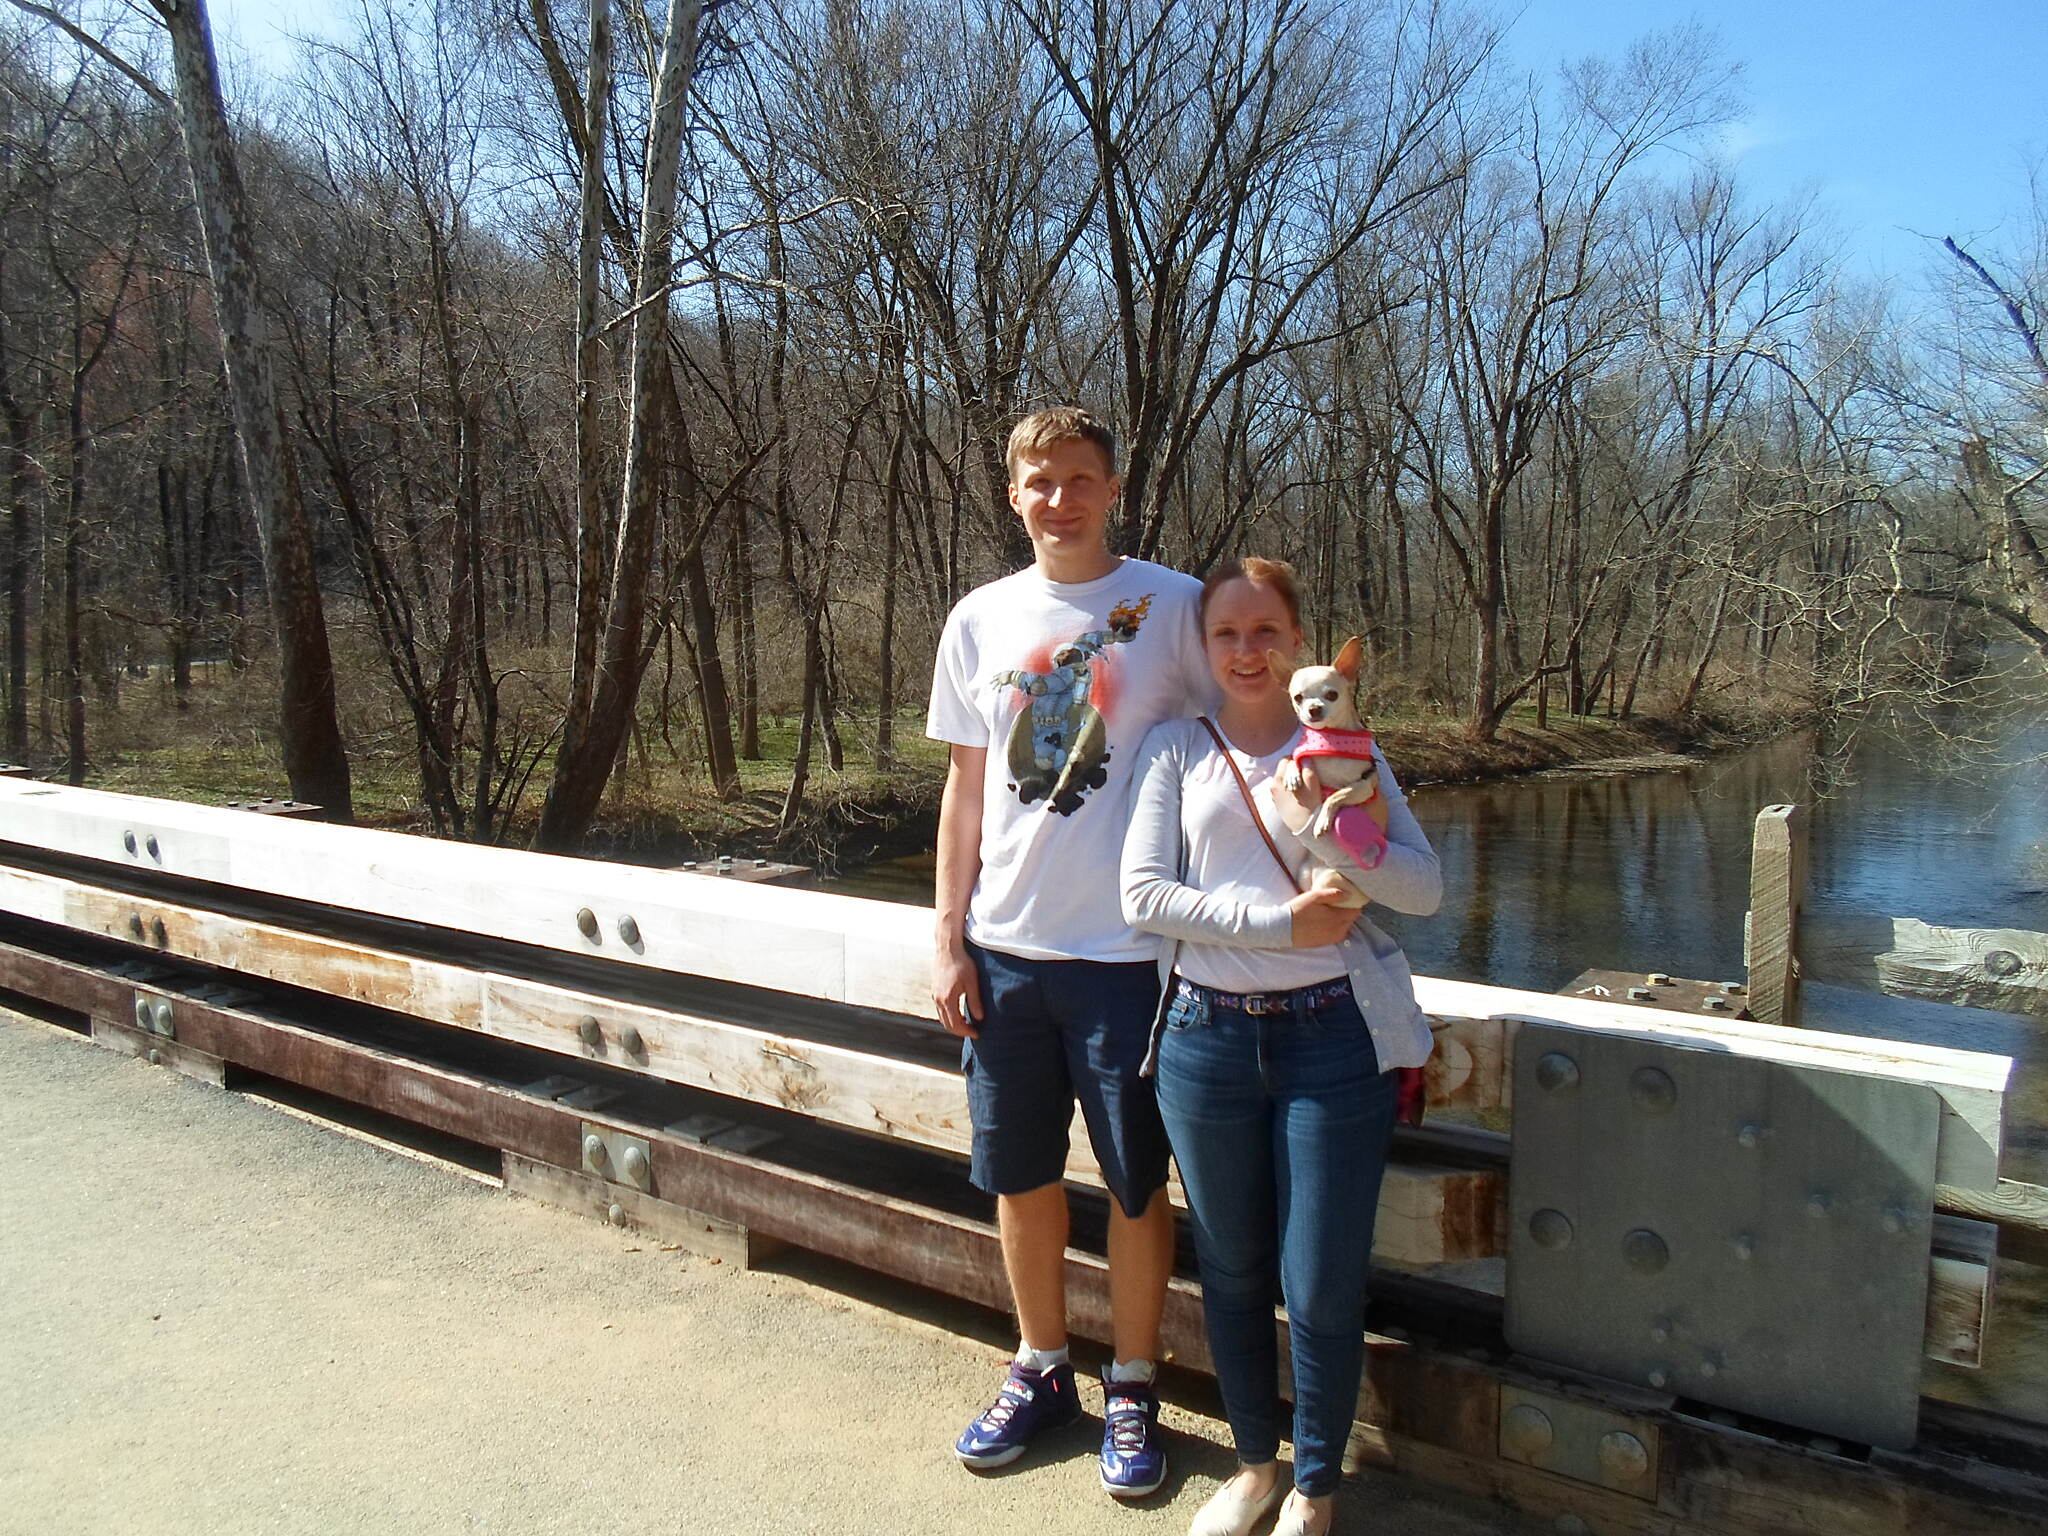 East Branch Brandywine Trail East Branch Brandywine Trail Couple posing with their small dog on the trail bridge. Taken April 2015.